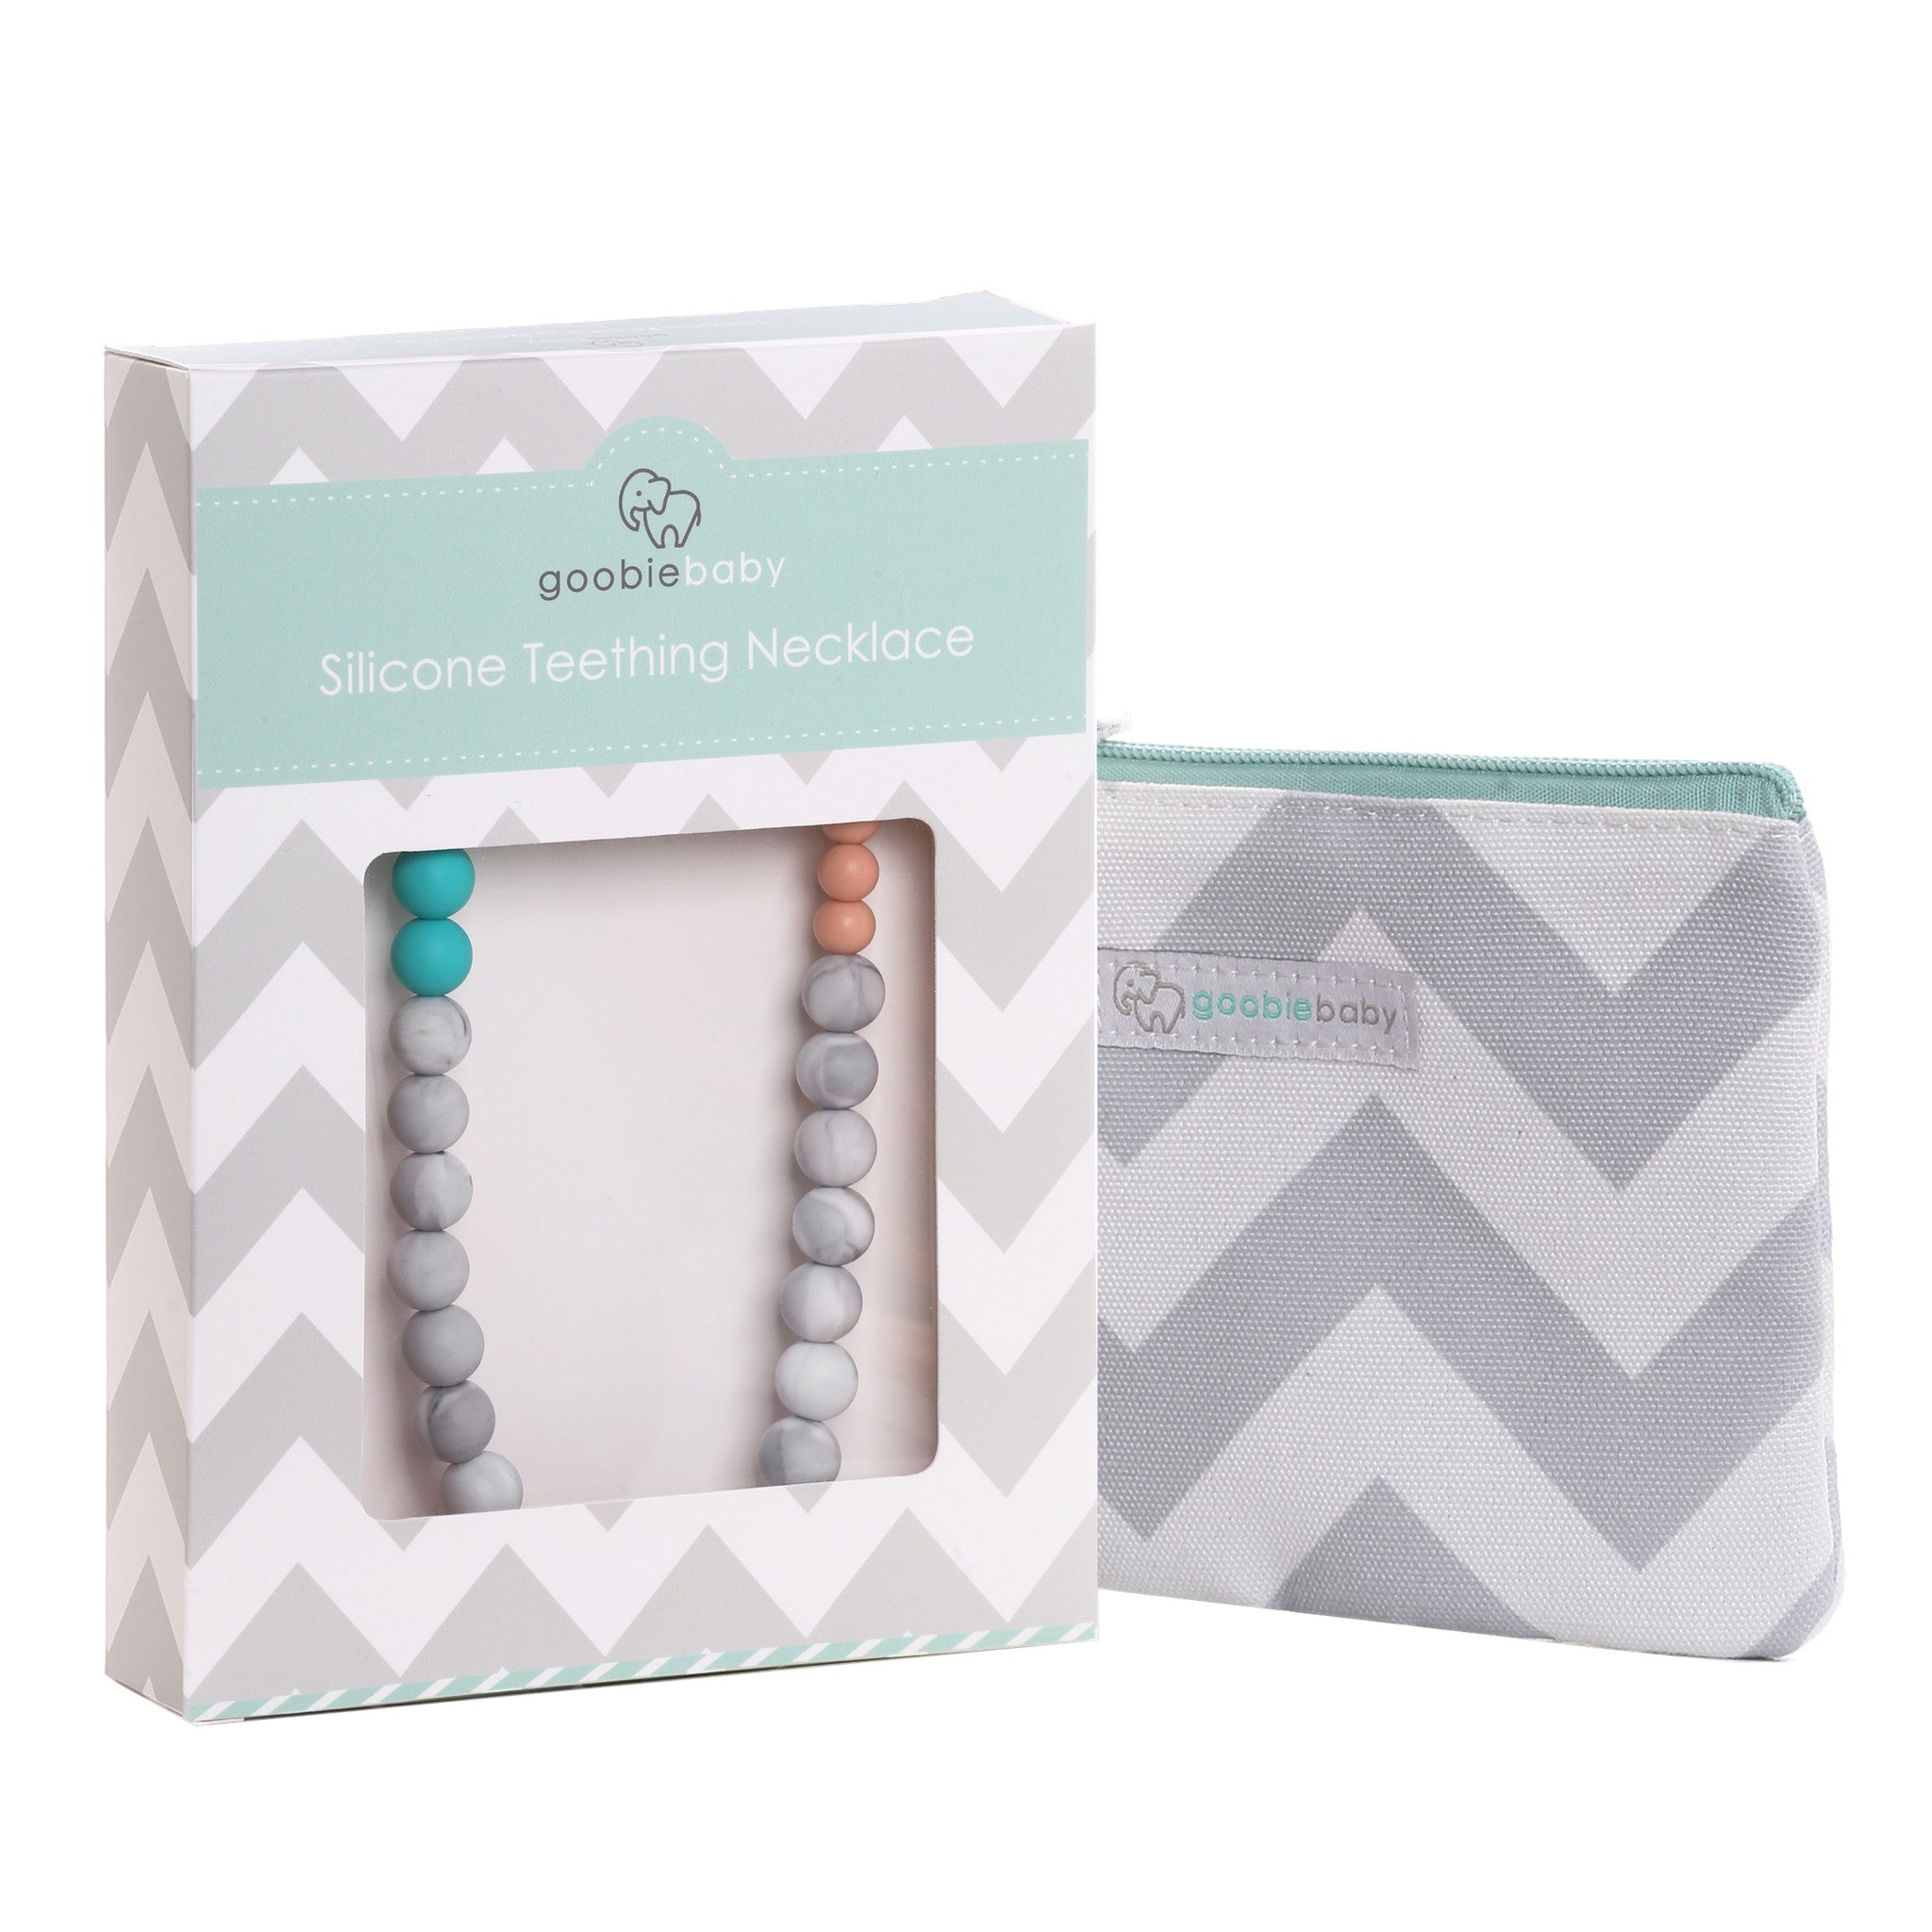 Sophie Teething Necklace - Turquoise/Grey/Marble/Peach